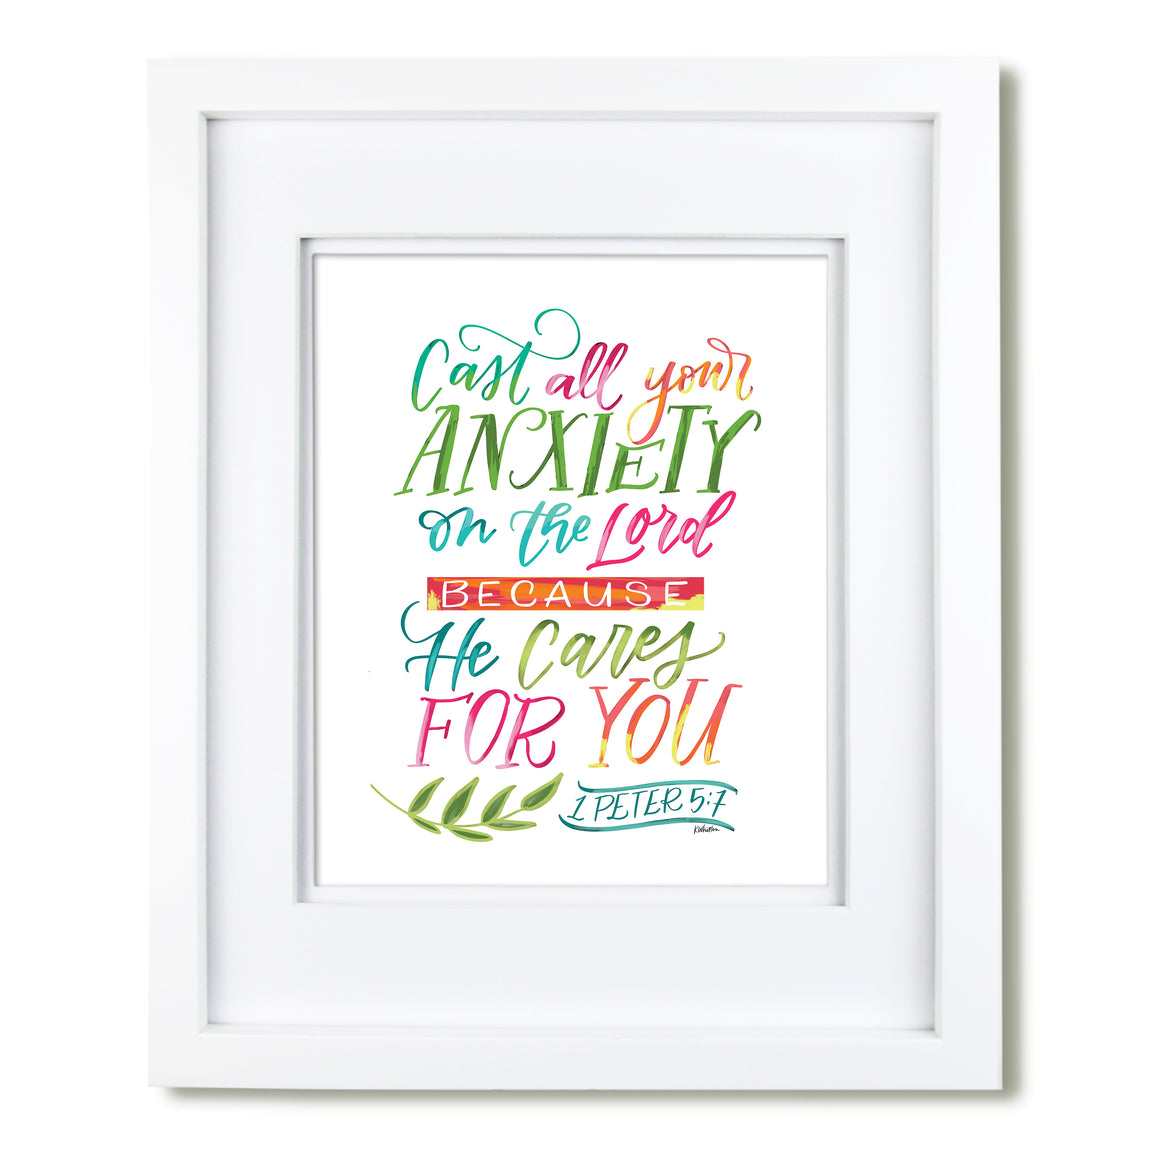 """Cast all your Anxiety on the Lord"" scripture art print"